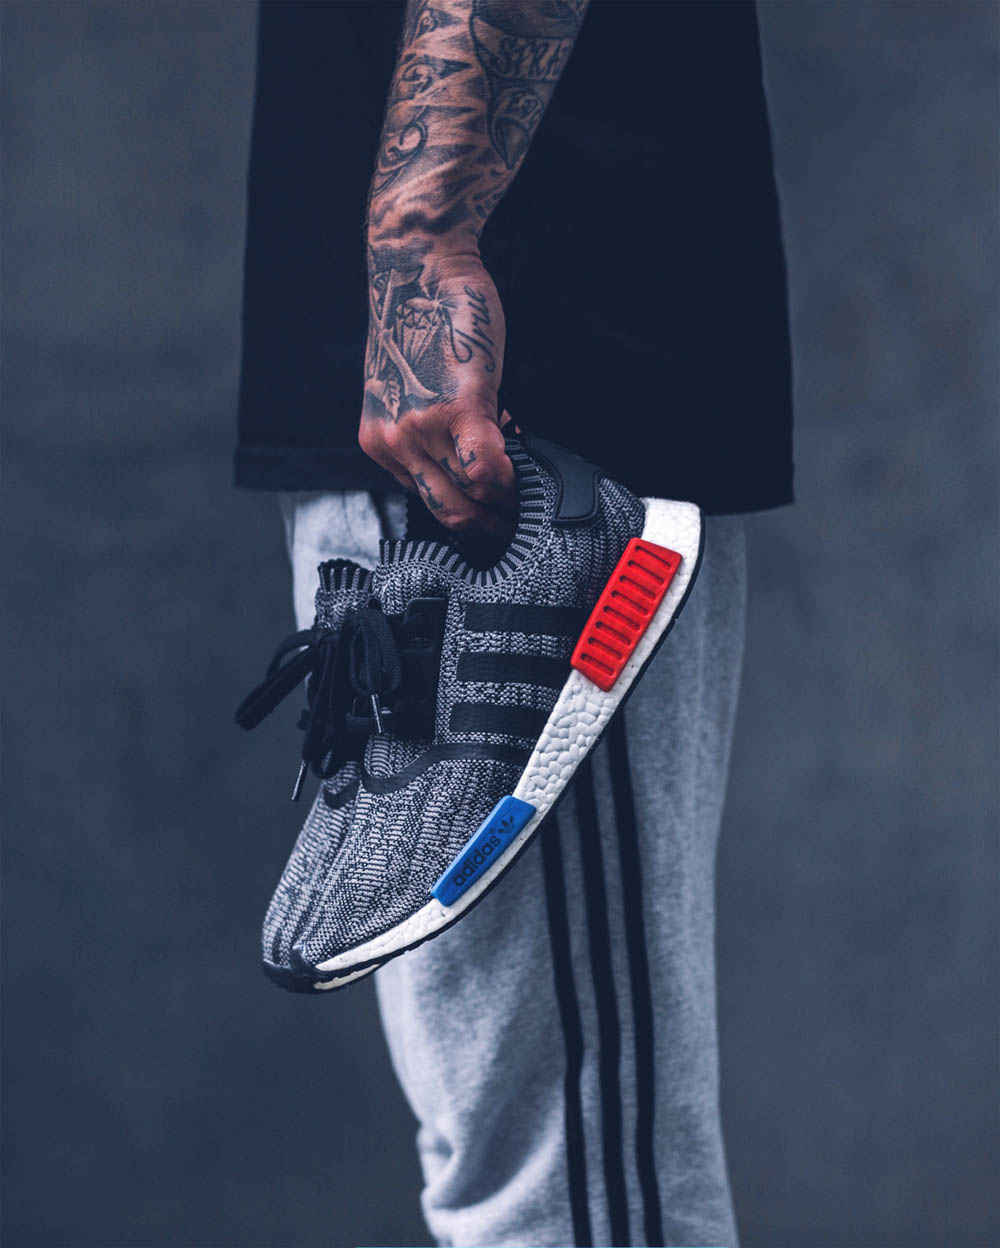 NMD & tattoos.